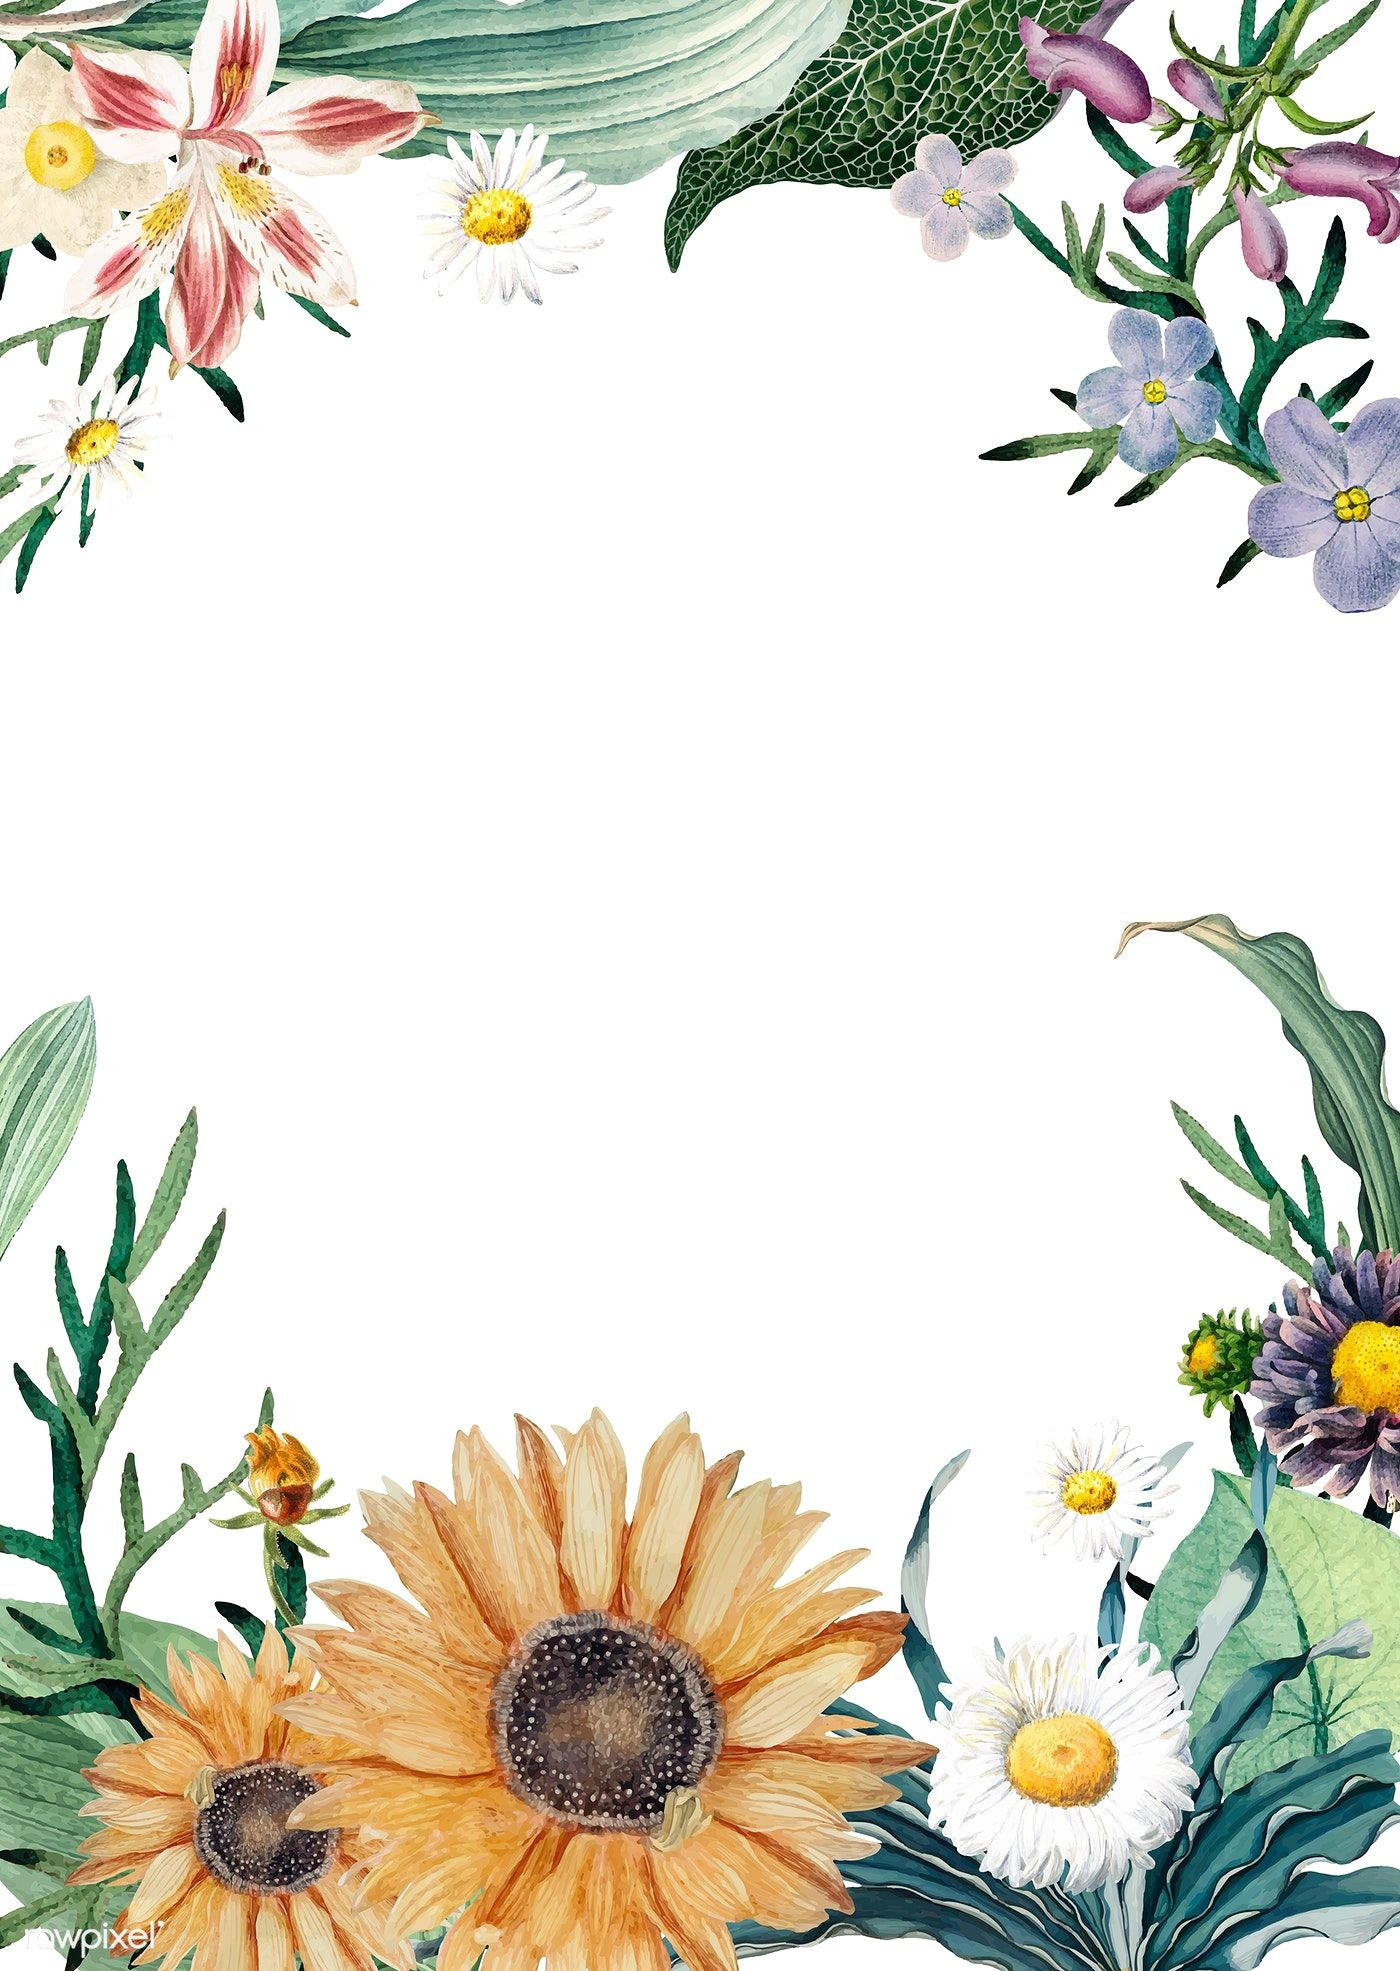 Floral framed invitation card vector free image by